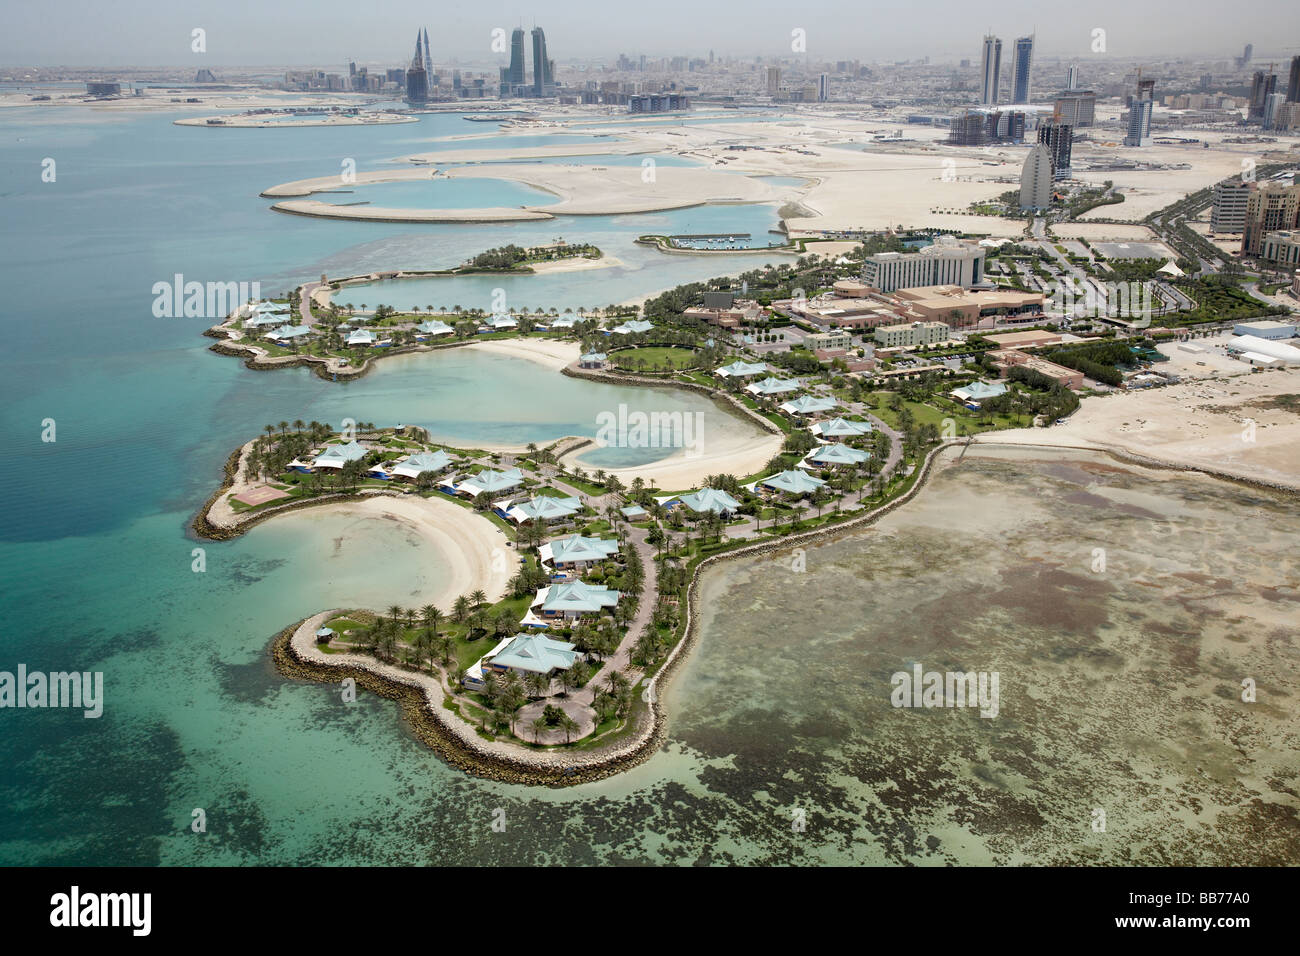 Aerial photograph of the Ritz Carlton Hotel and resort Manama Bahrain - Stock Image